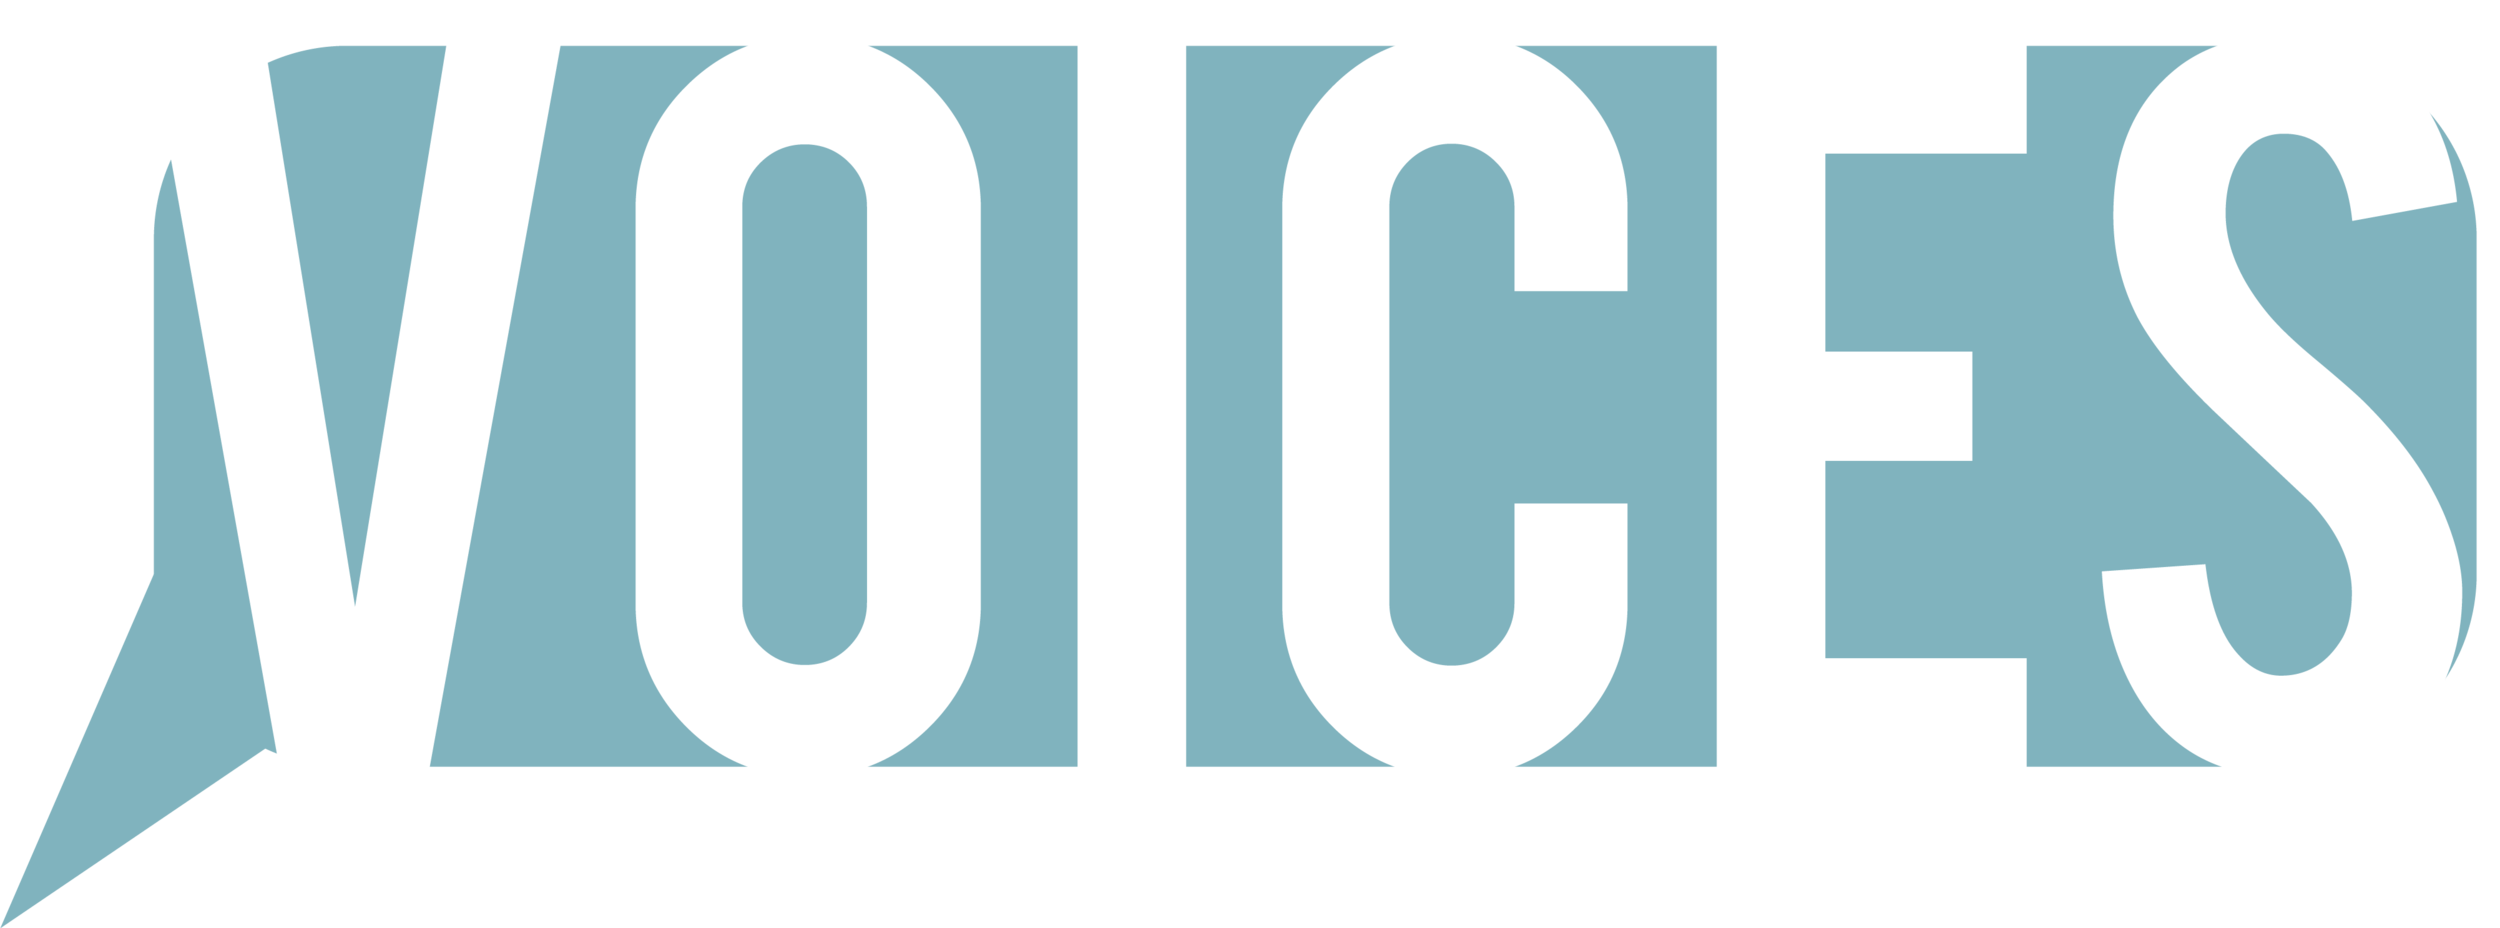 voices logo_1 (1).png